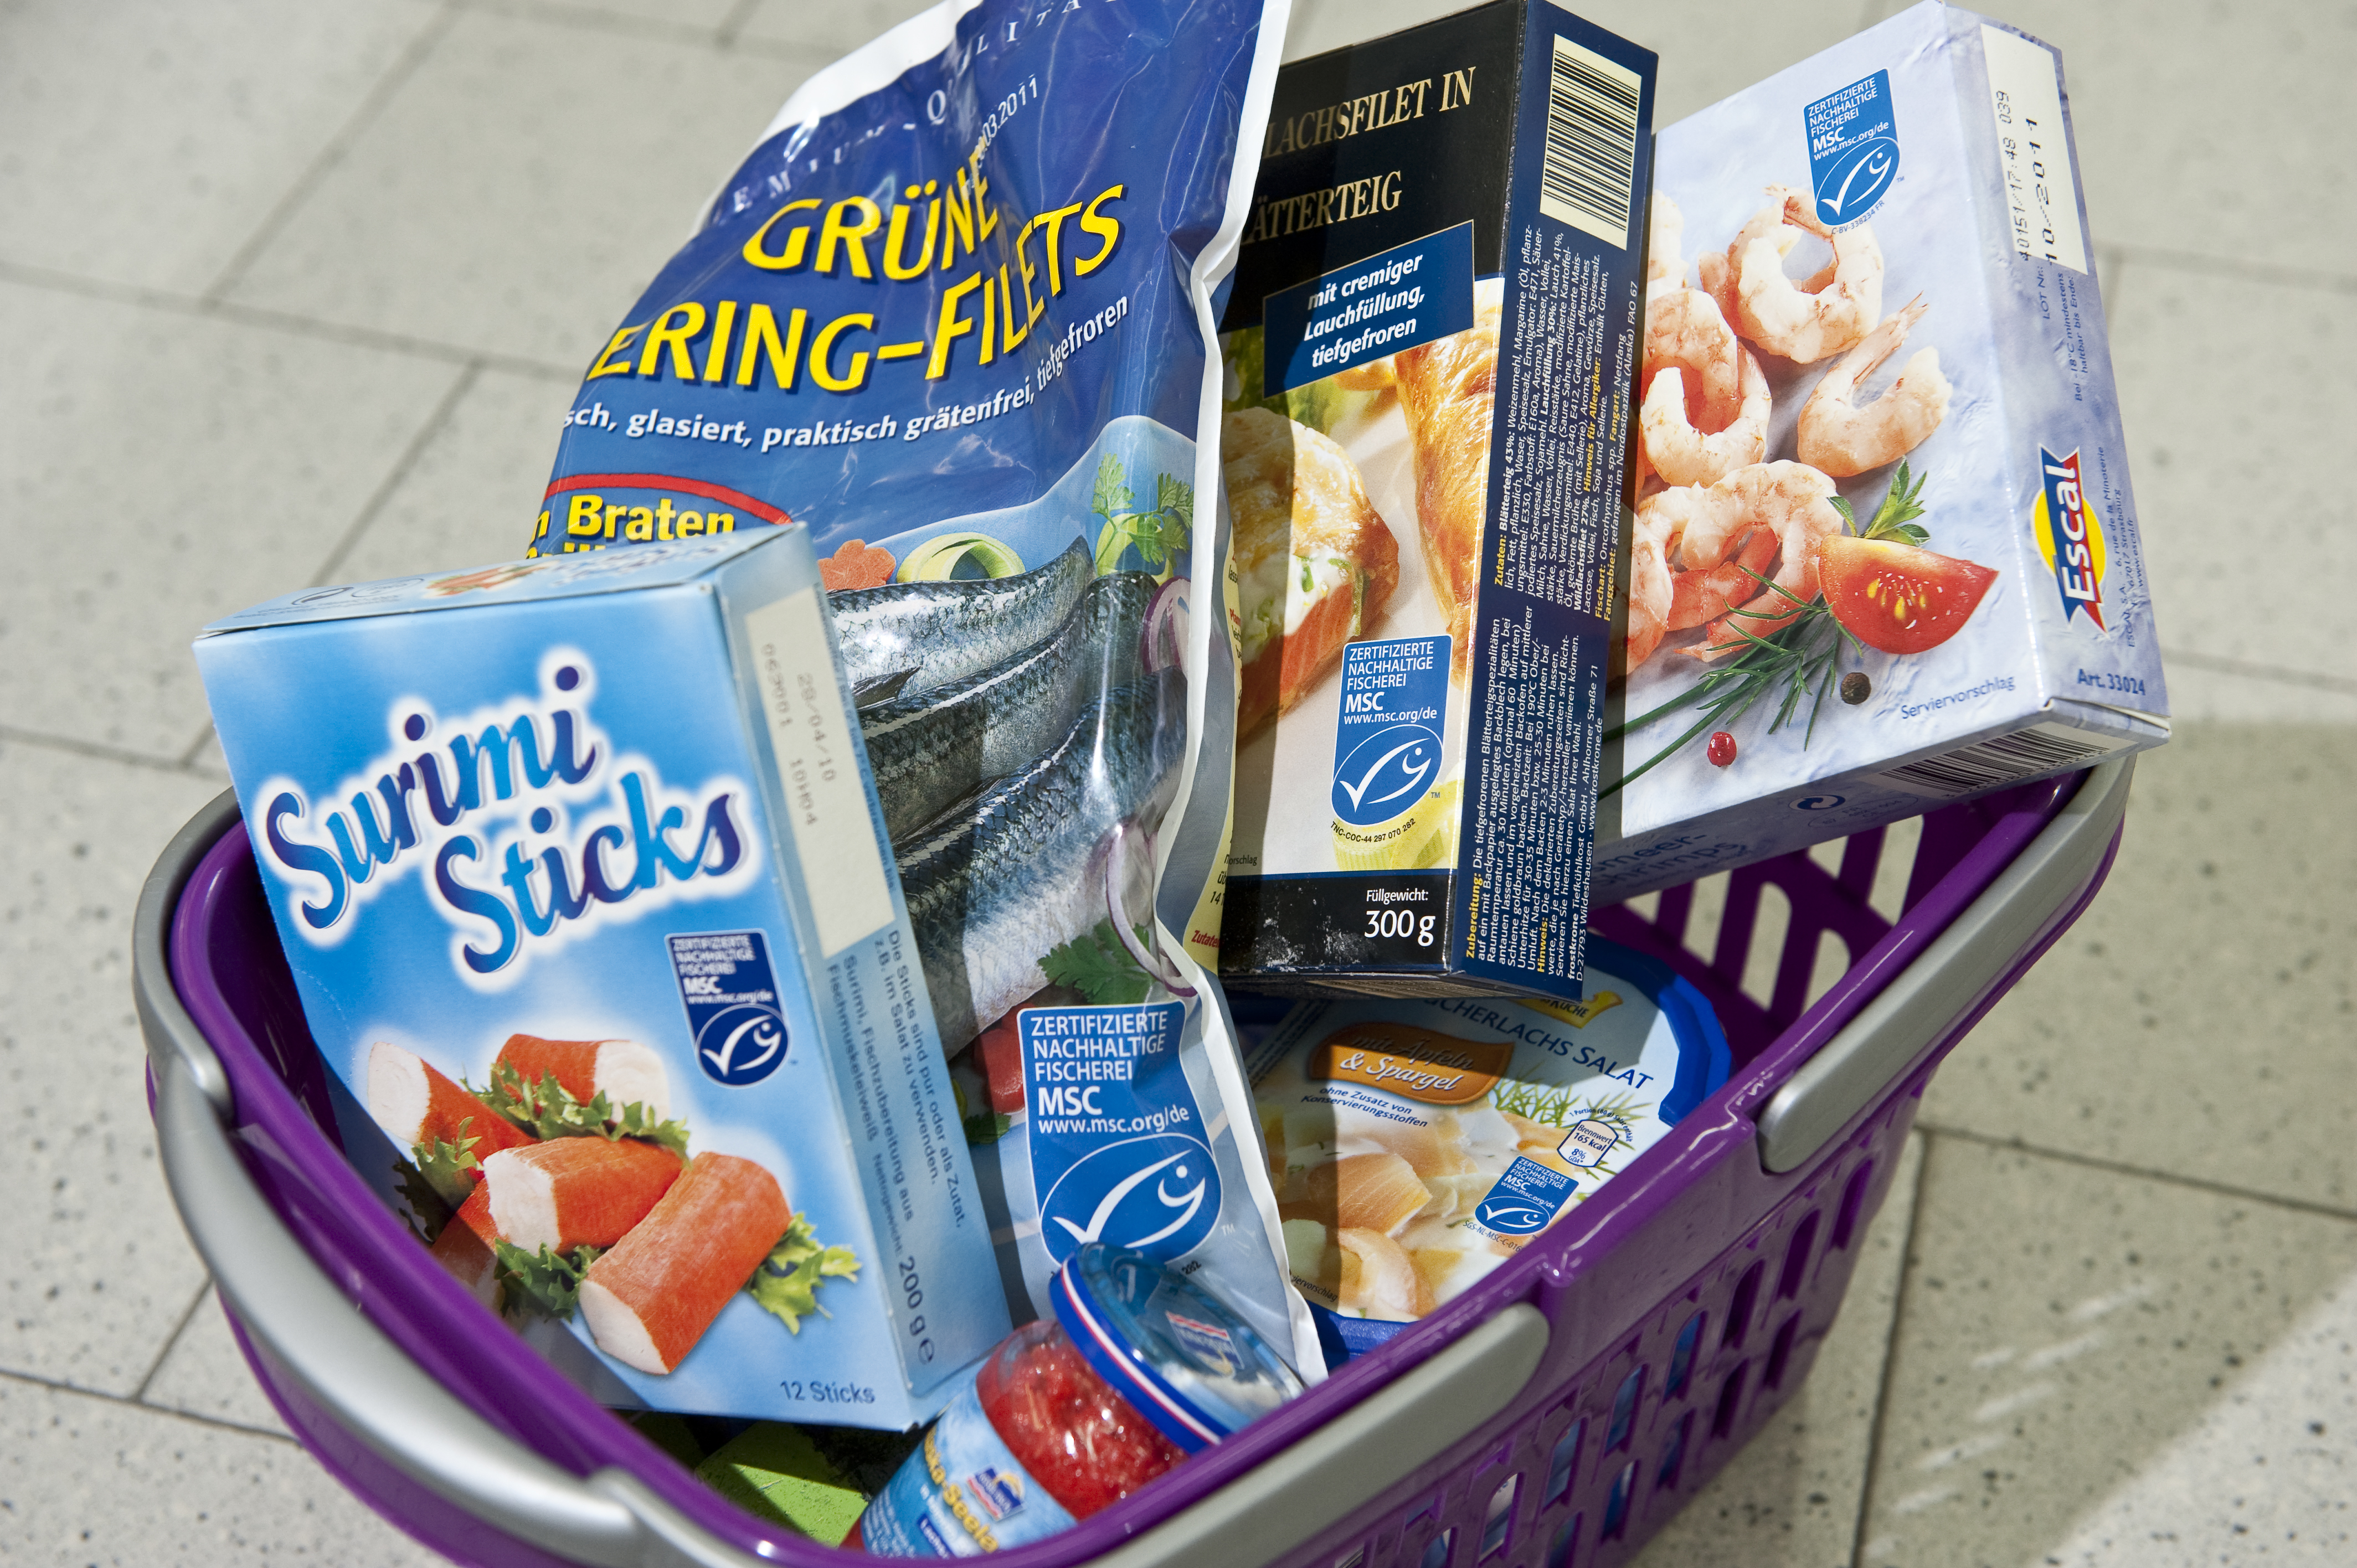 Wwf marine stewardship council msc wild seafood for Fishpond products